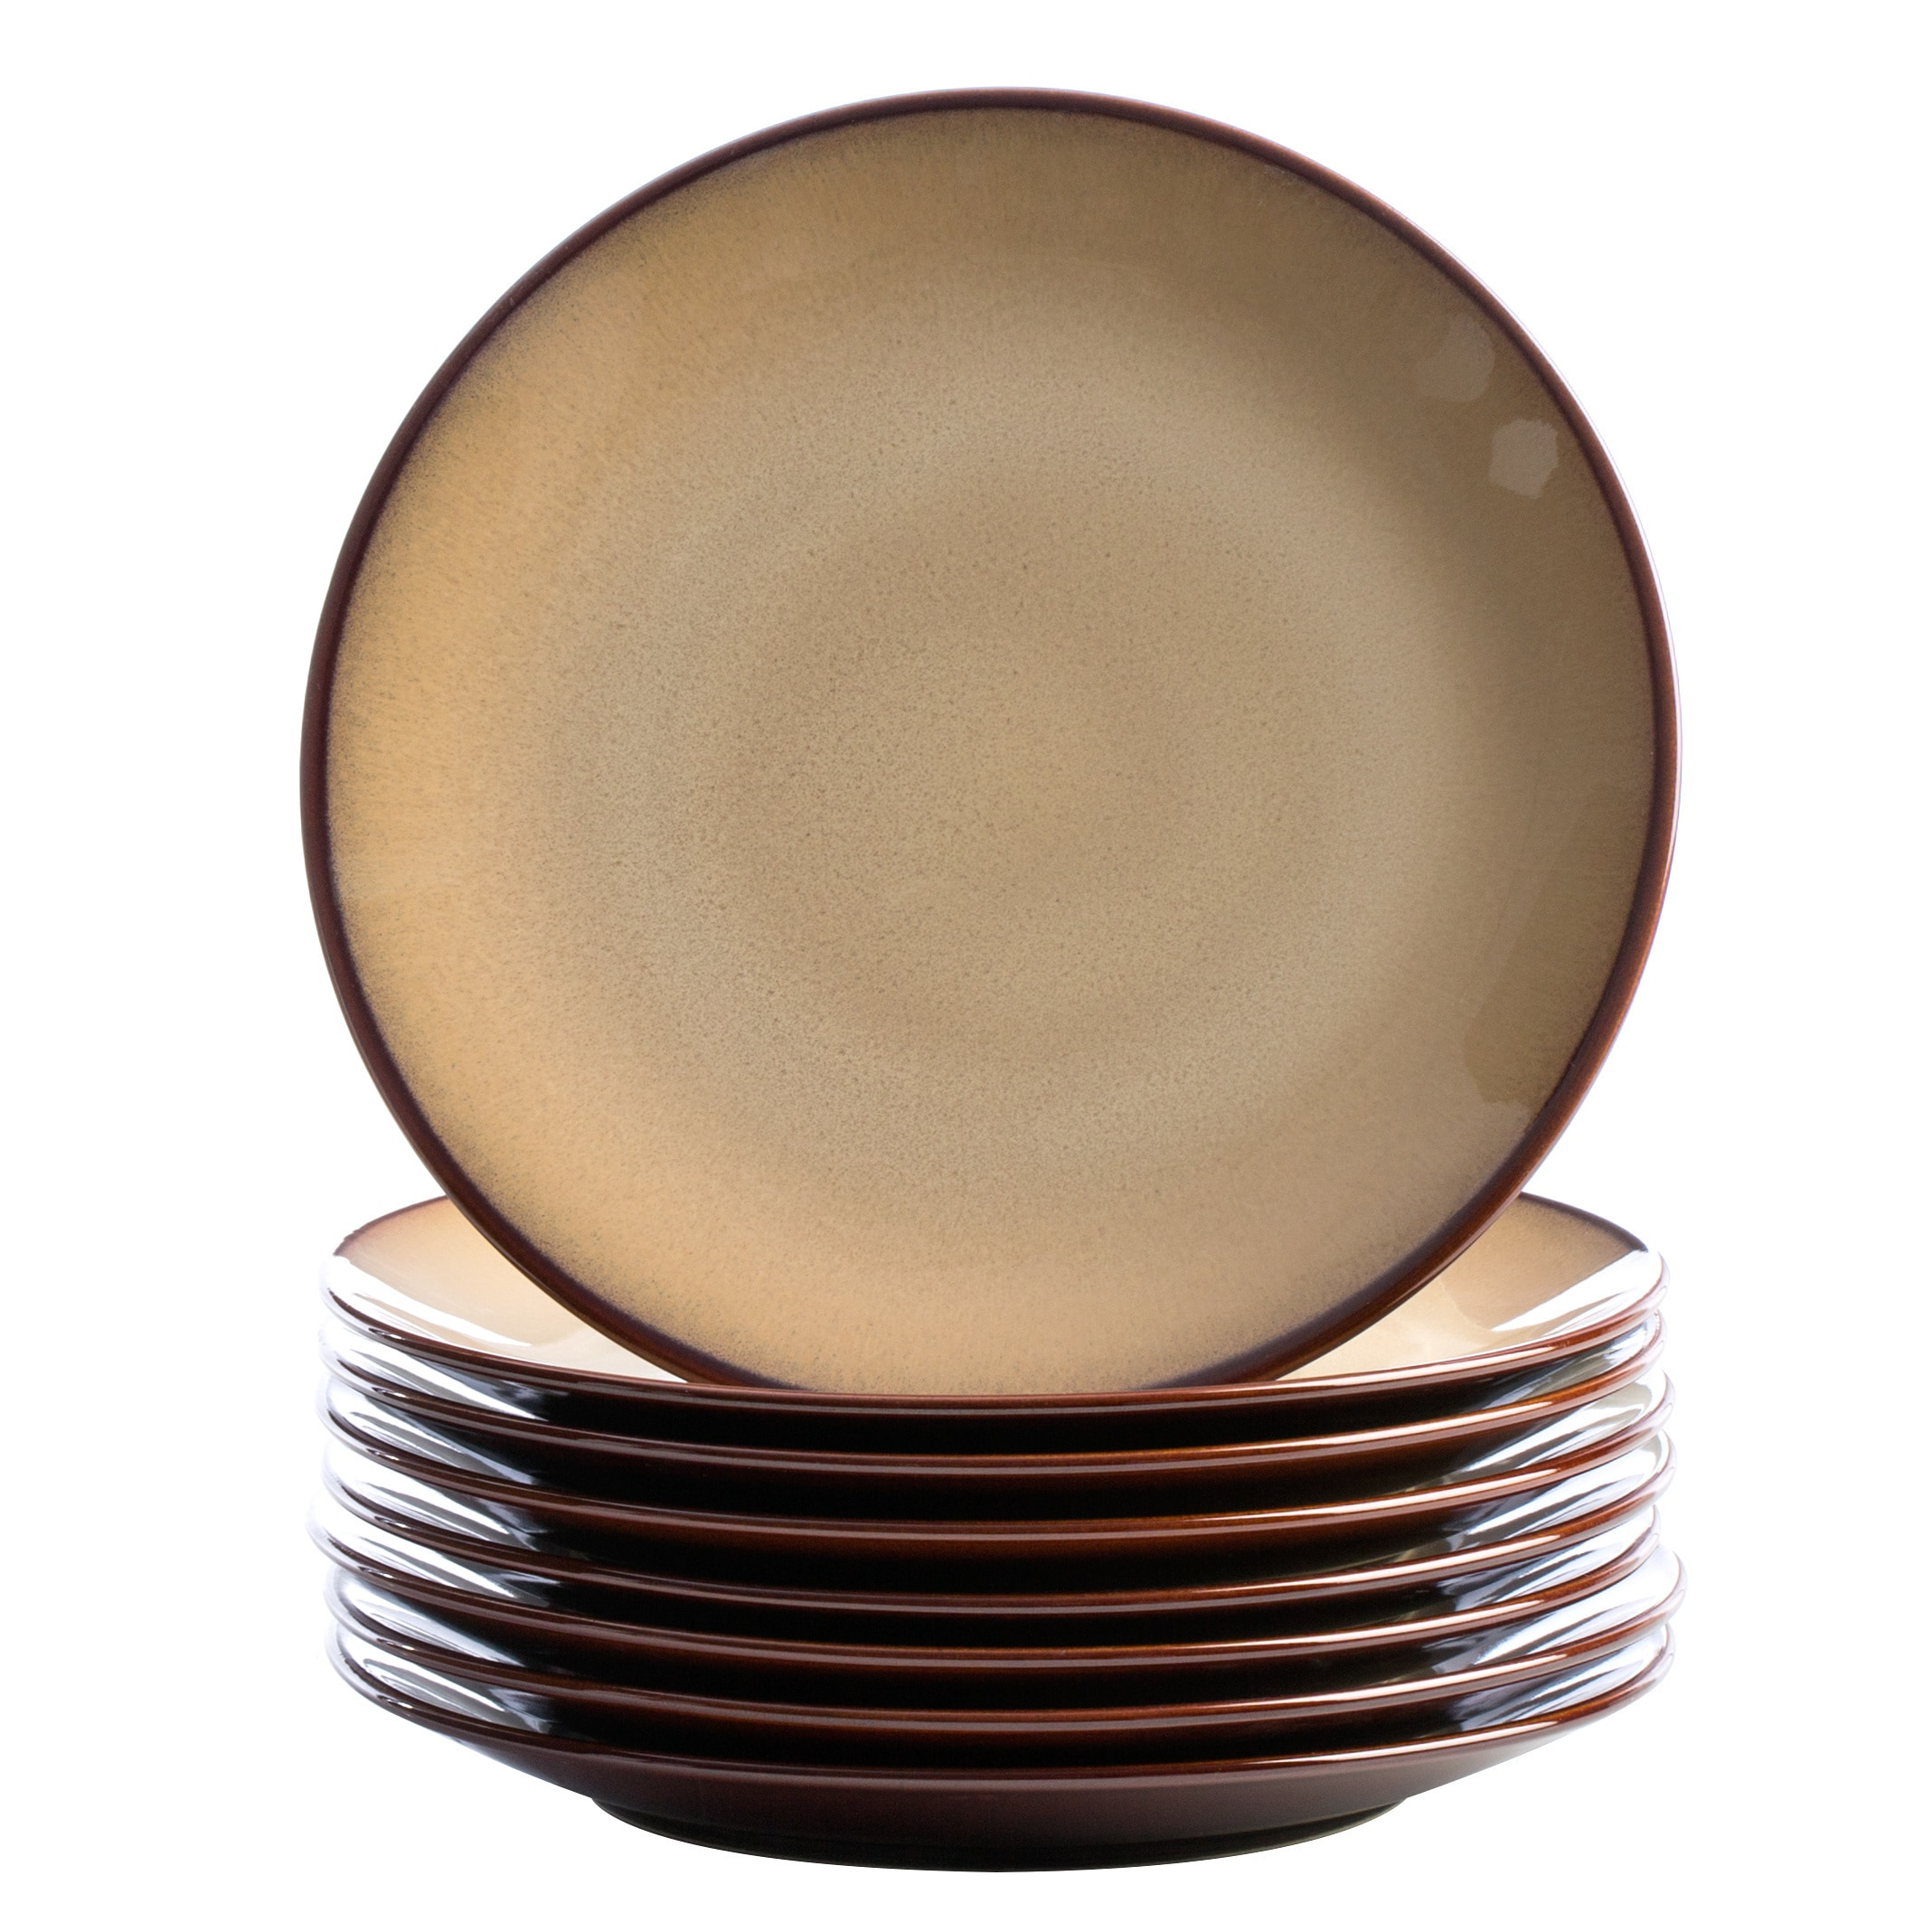 Shop Sango 40-piece Nova Brown Stoneware Dinnerware Set - Free Shipping Today - Overstock.com - 5166018  sc 1 st  Overstock & Shop Sango 40-piece Nova Brown Stoneware Dinnerware Set - Free ...